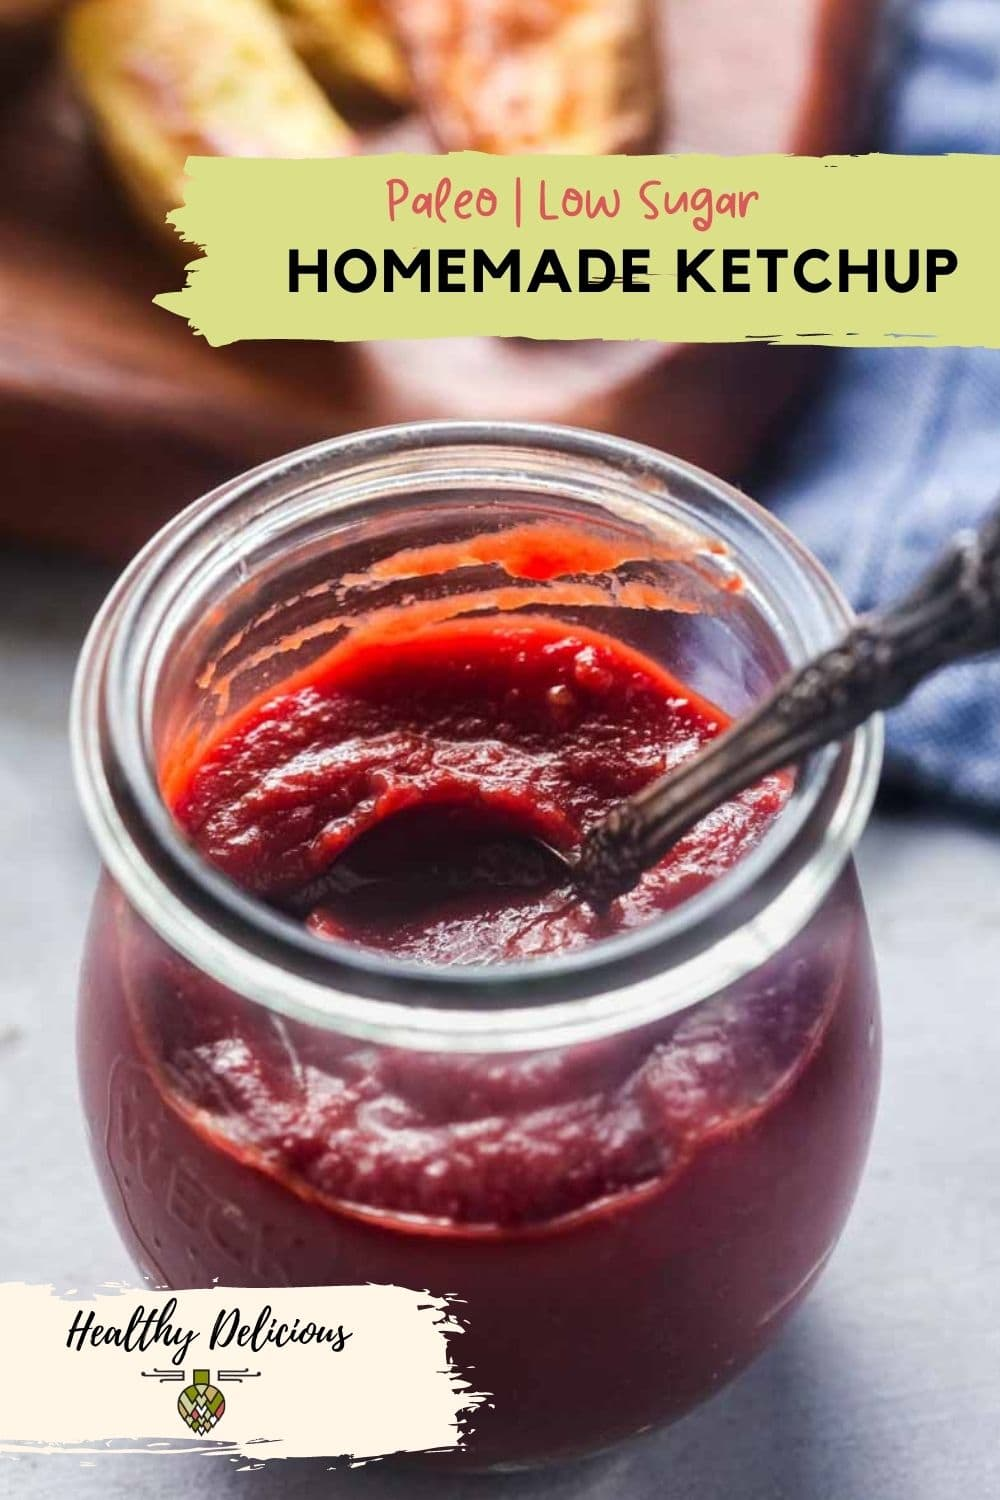 Easy homemade ketchup without any corn syrup! This paleo ketchup recipe is sweetened with honey and balsamic vinegar for the classic flavor you know and love without all of the sugar. via @HealthyDelish